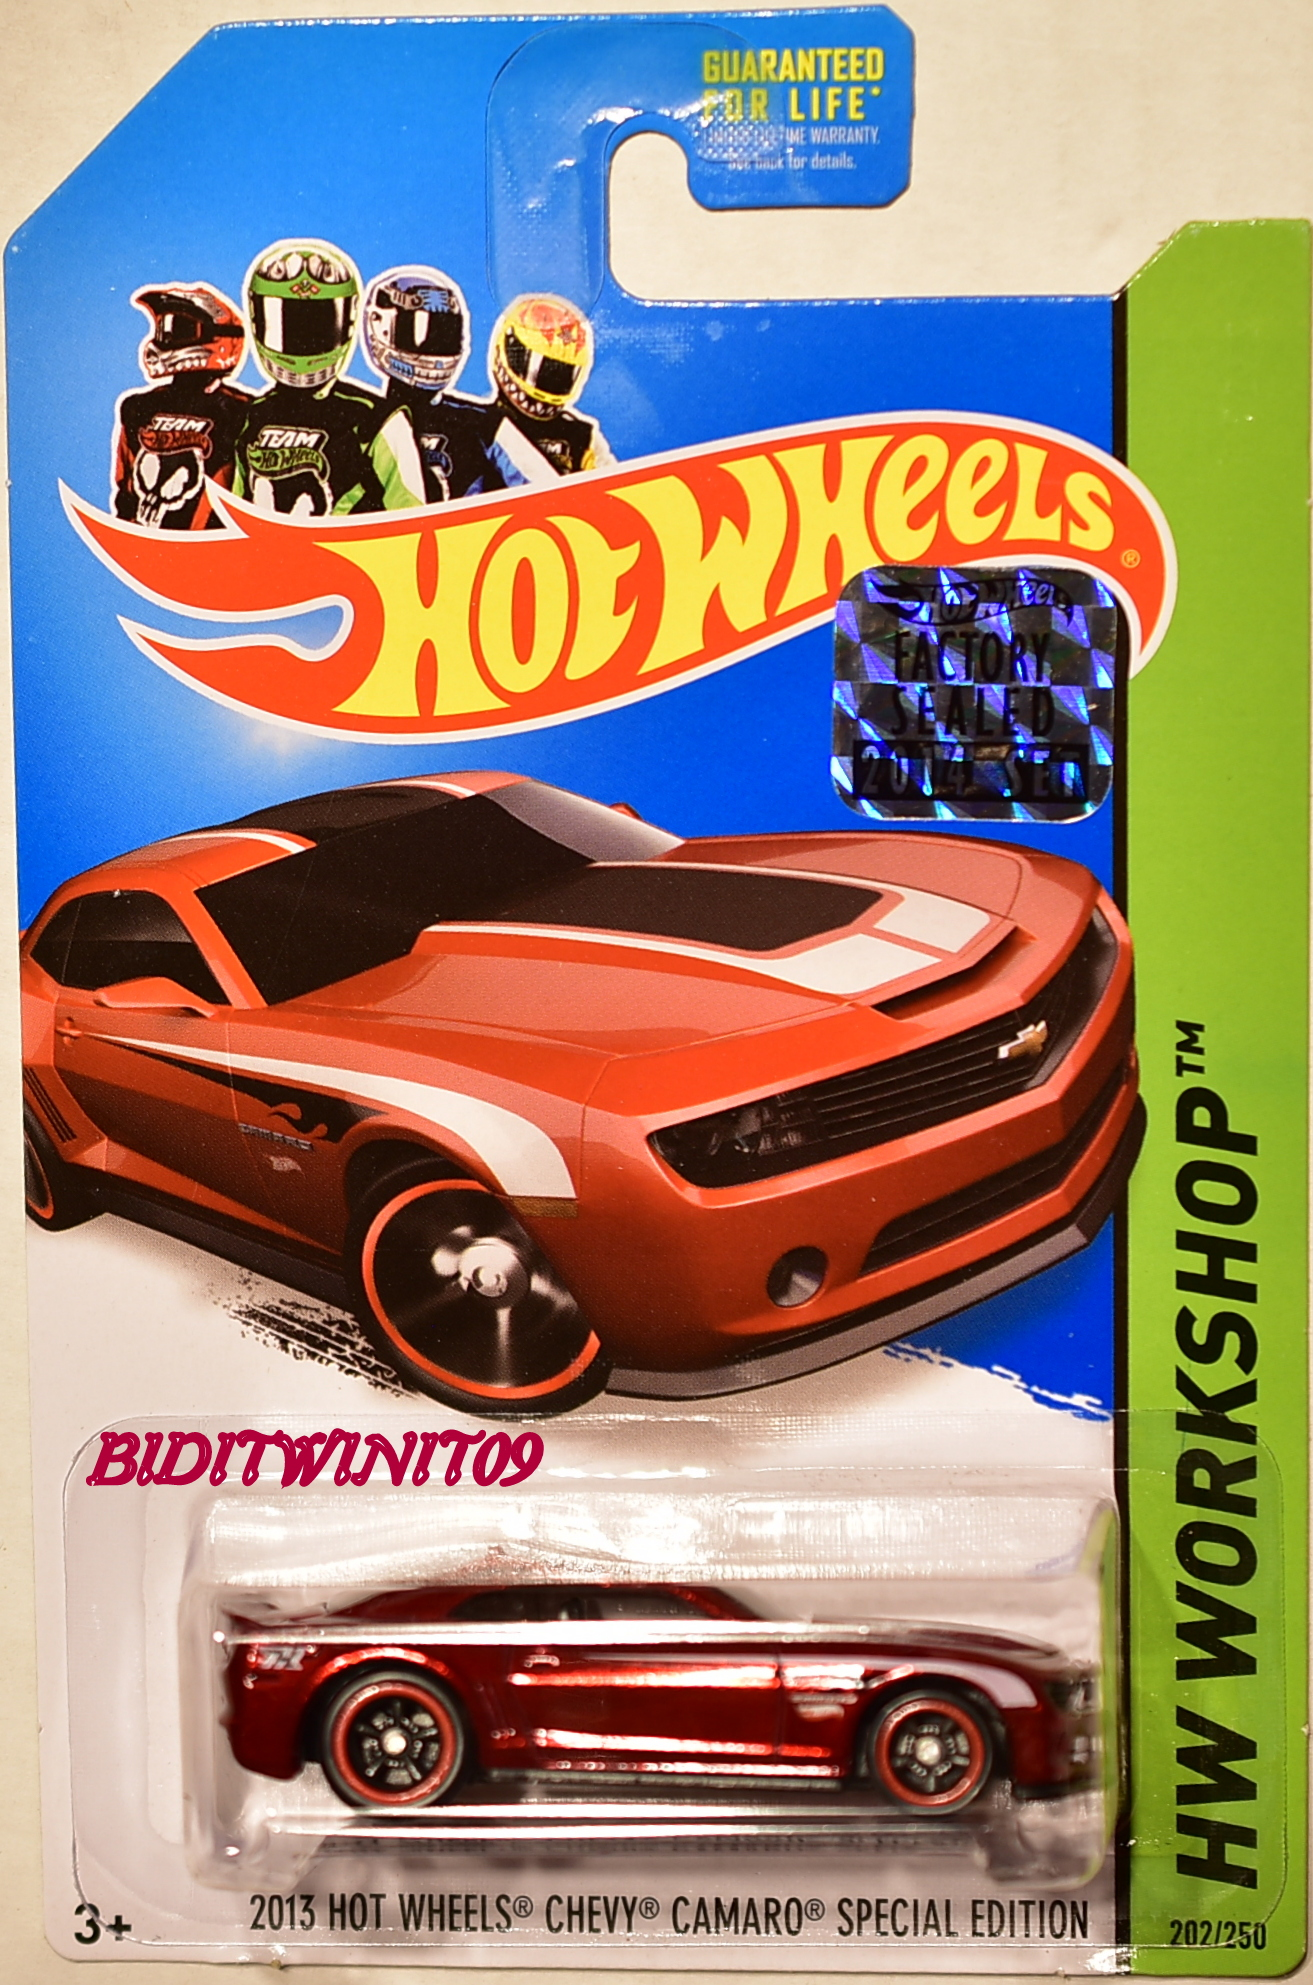 HOT WHEELS 2014 SUPER T-HUNT 2013 HW CHEVY CAMARO SPECIAL EDITION FACTORY SEALED